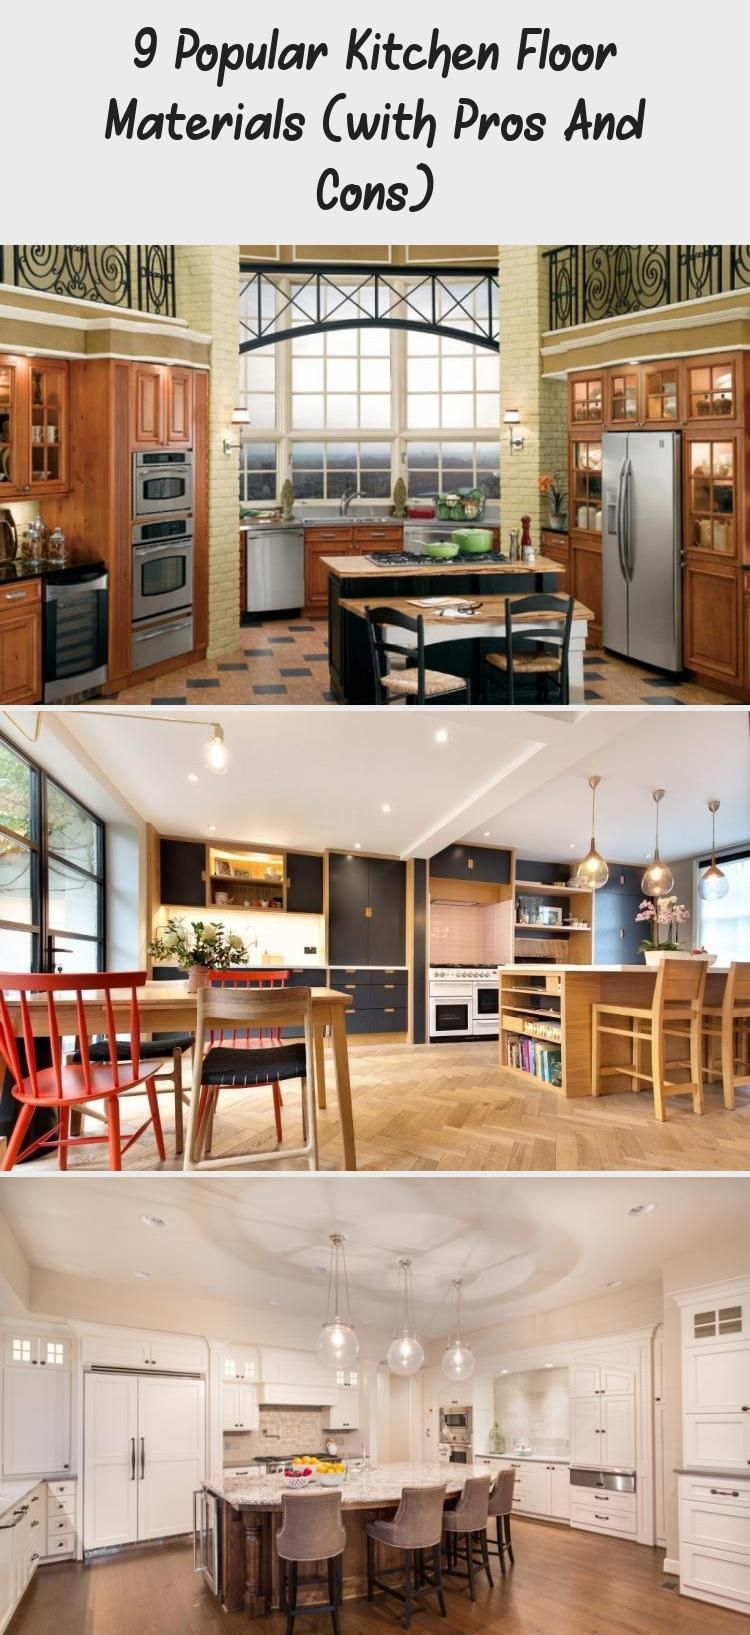 9 Popular Kitchen Floor Materials With Pros And Cons Kitchen Decor Kitchen Flooring Country Kitchen Tiles Popular Kitchens